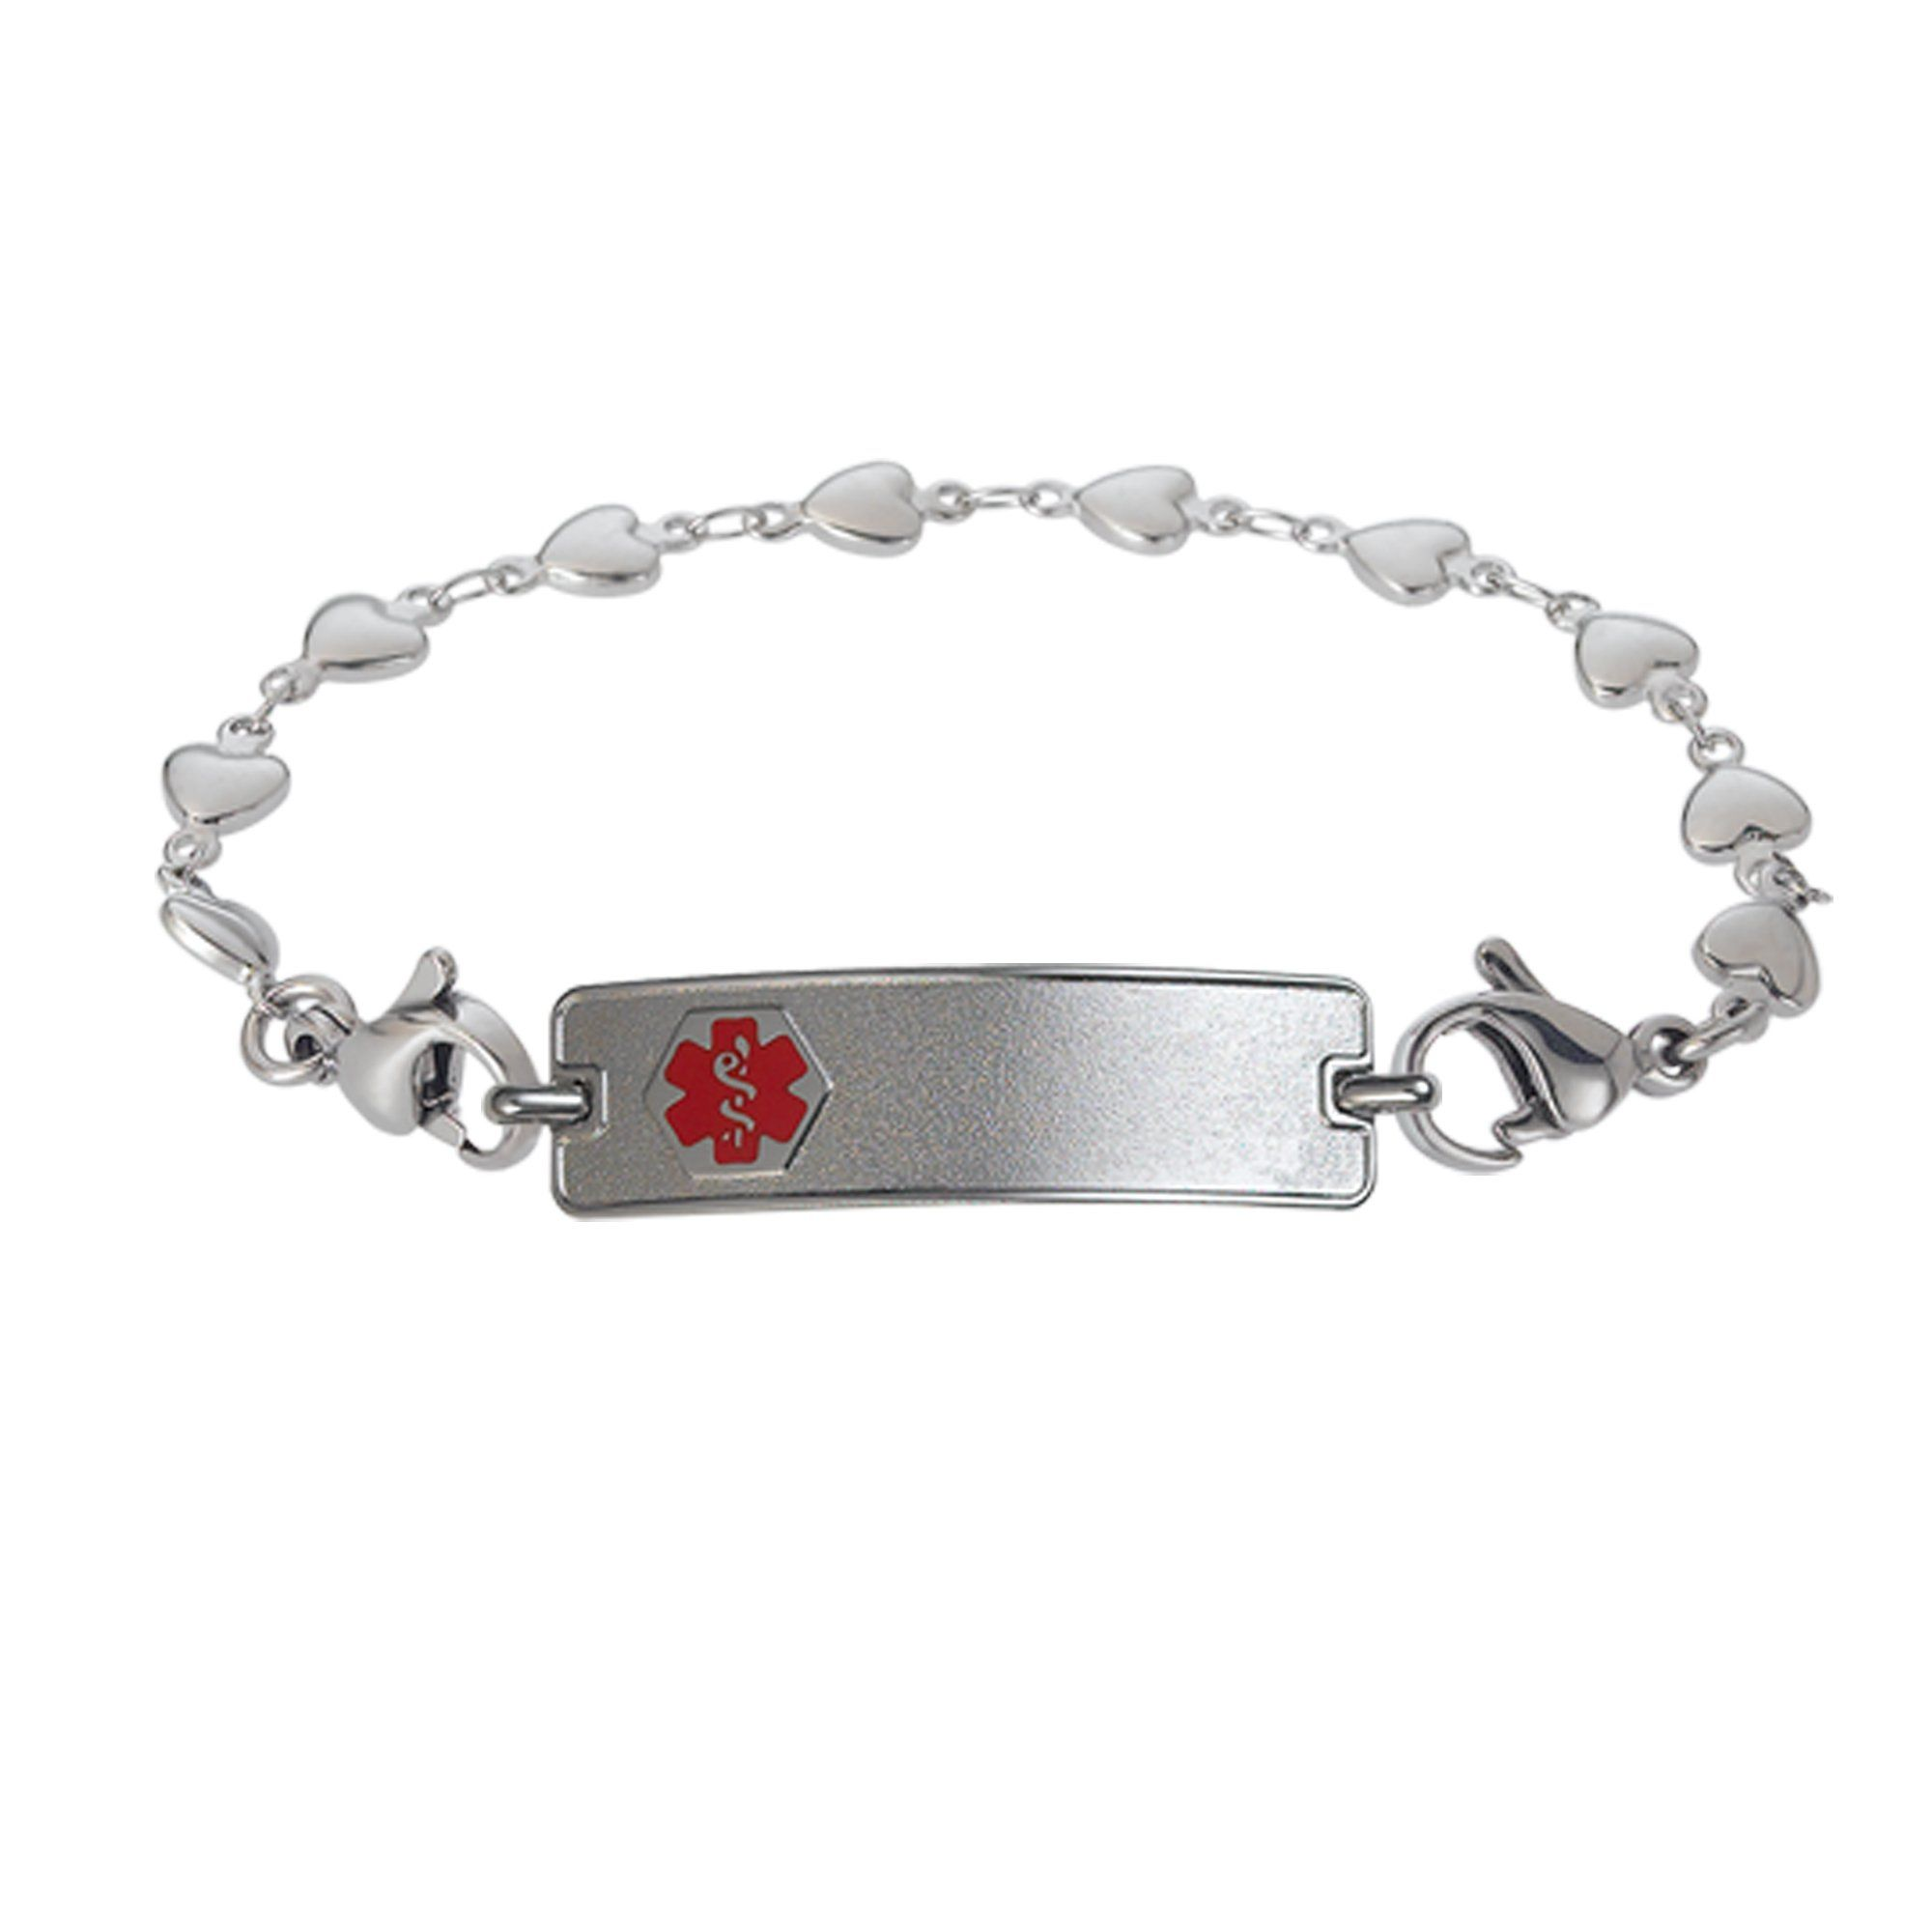 My Identity Doctor Pre-Engraved /& Customized No Nsaids ID Bracelet Pink Red Millefiori Glass